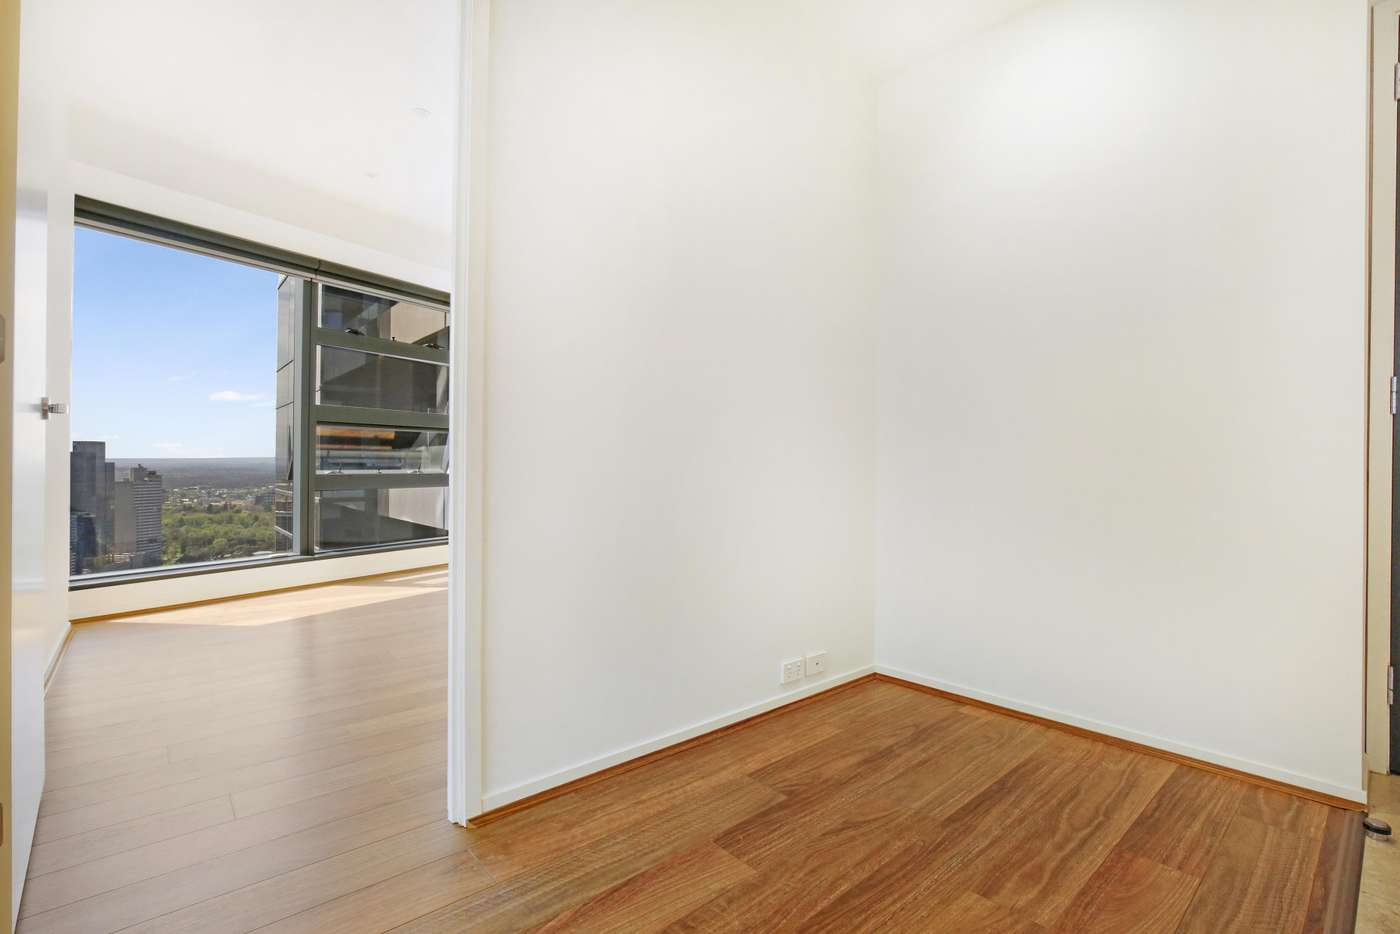 Sixth view of Homely apartment listing, 4807/7 Riverside Quay, Southbank VIC 3006